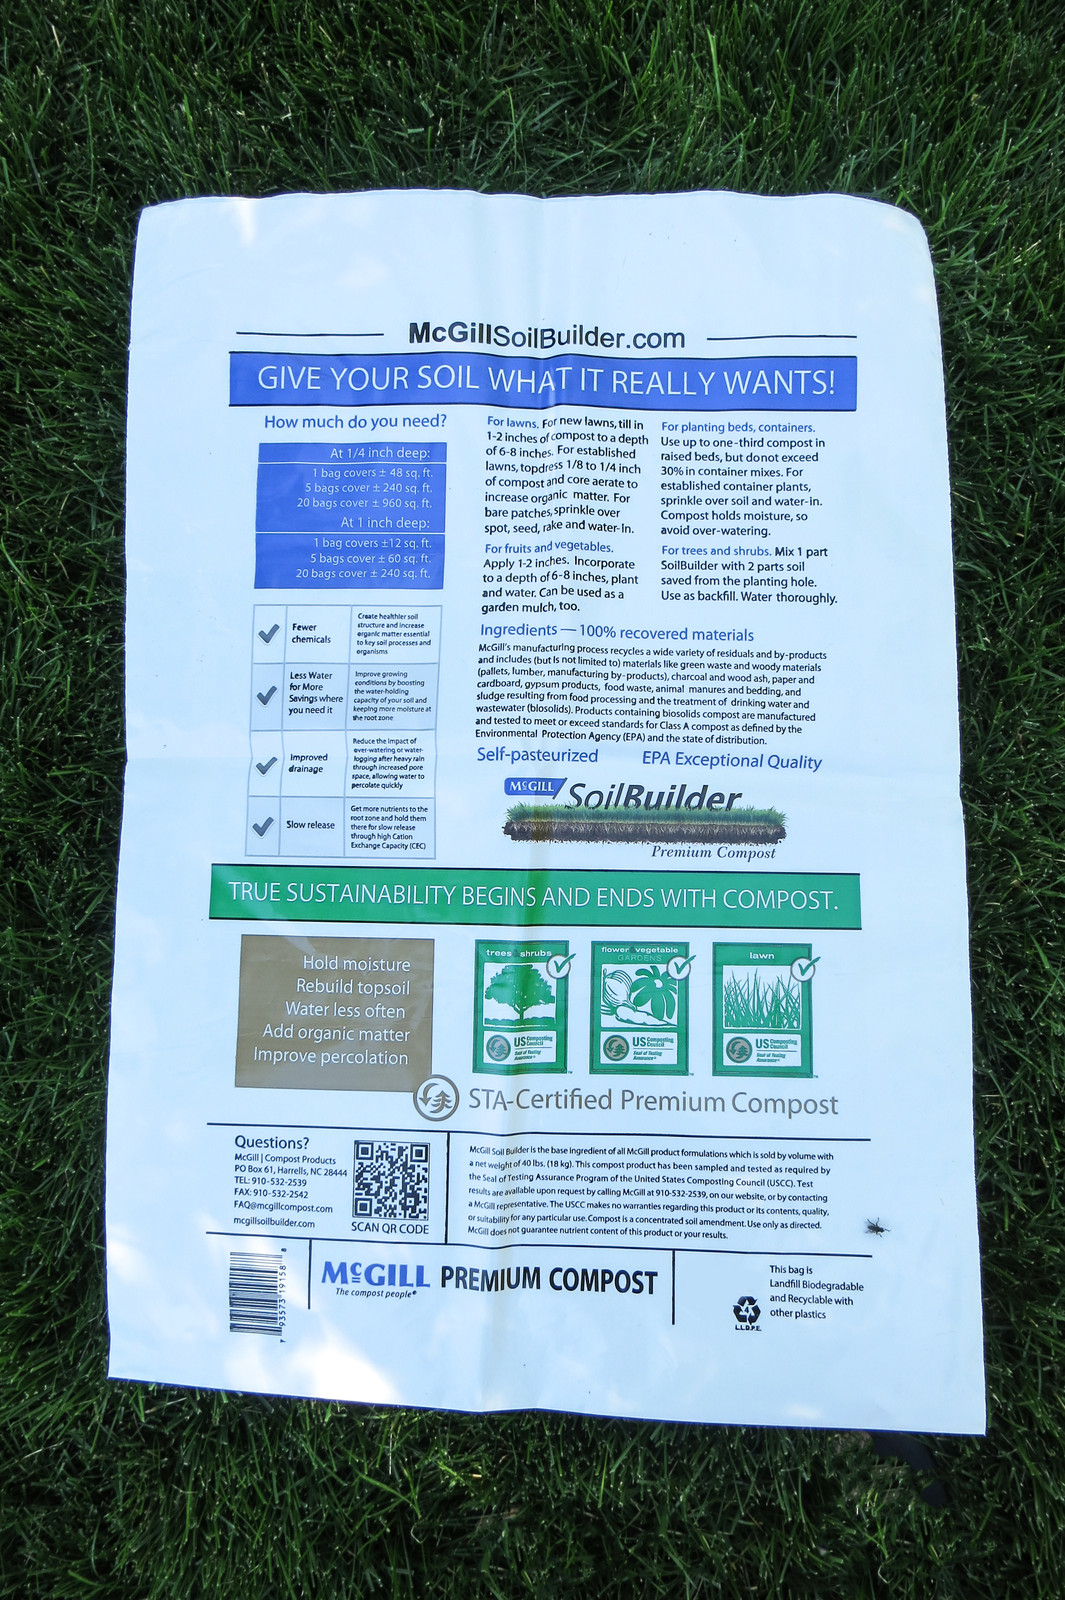 Biodegradable-Plastic-Bags-for-Compost-Bags jpg